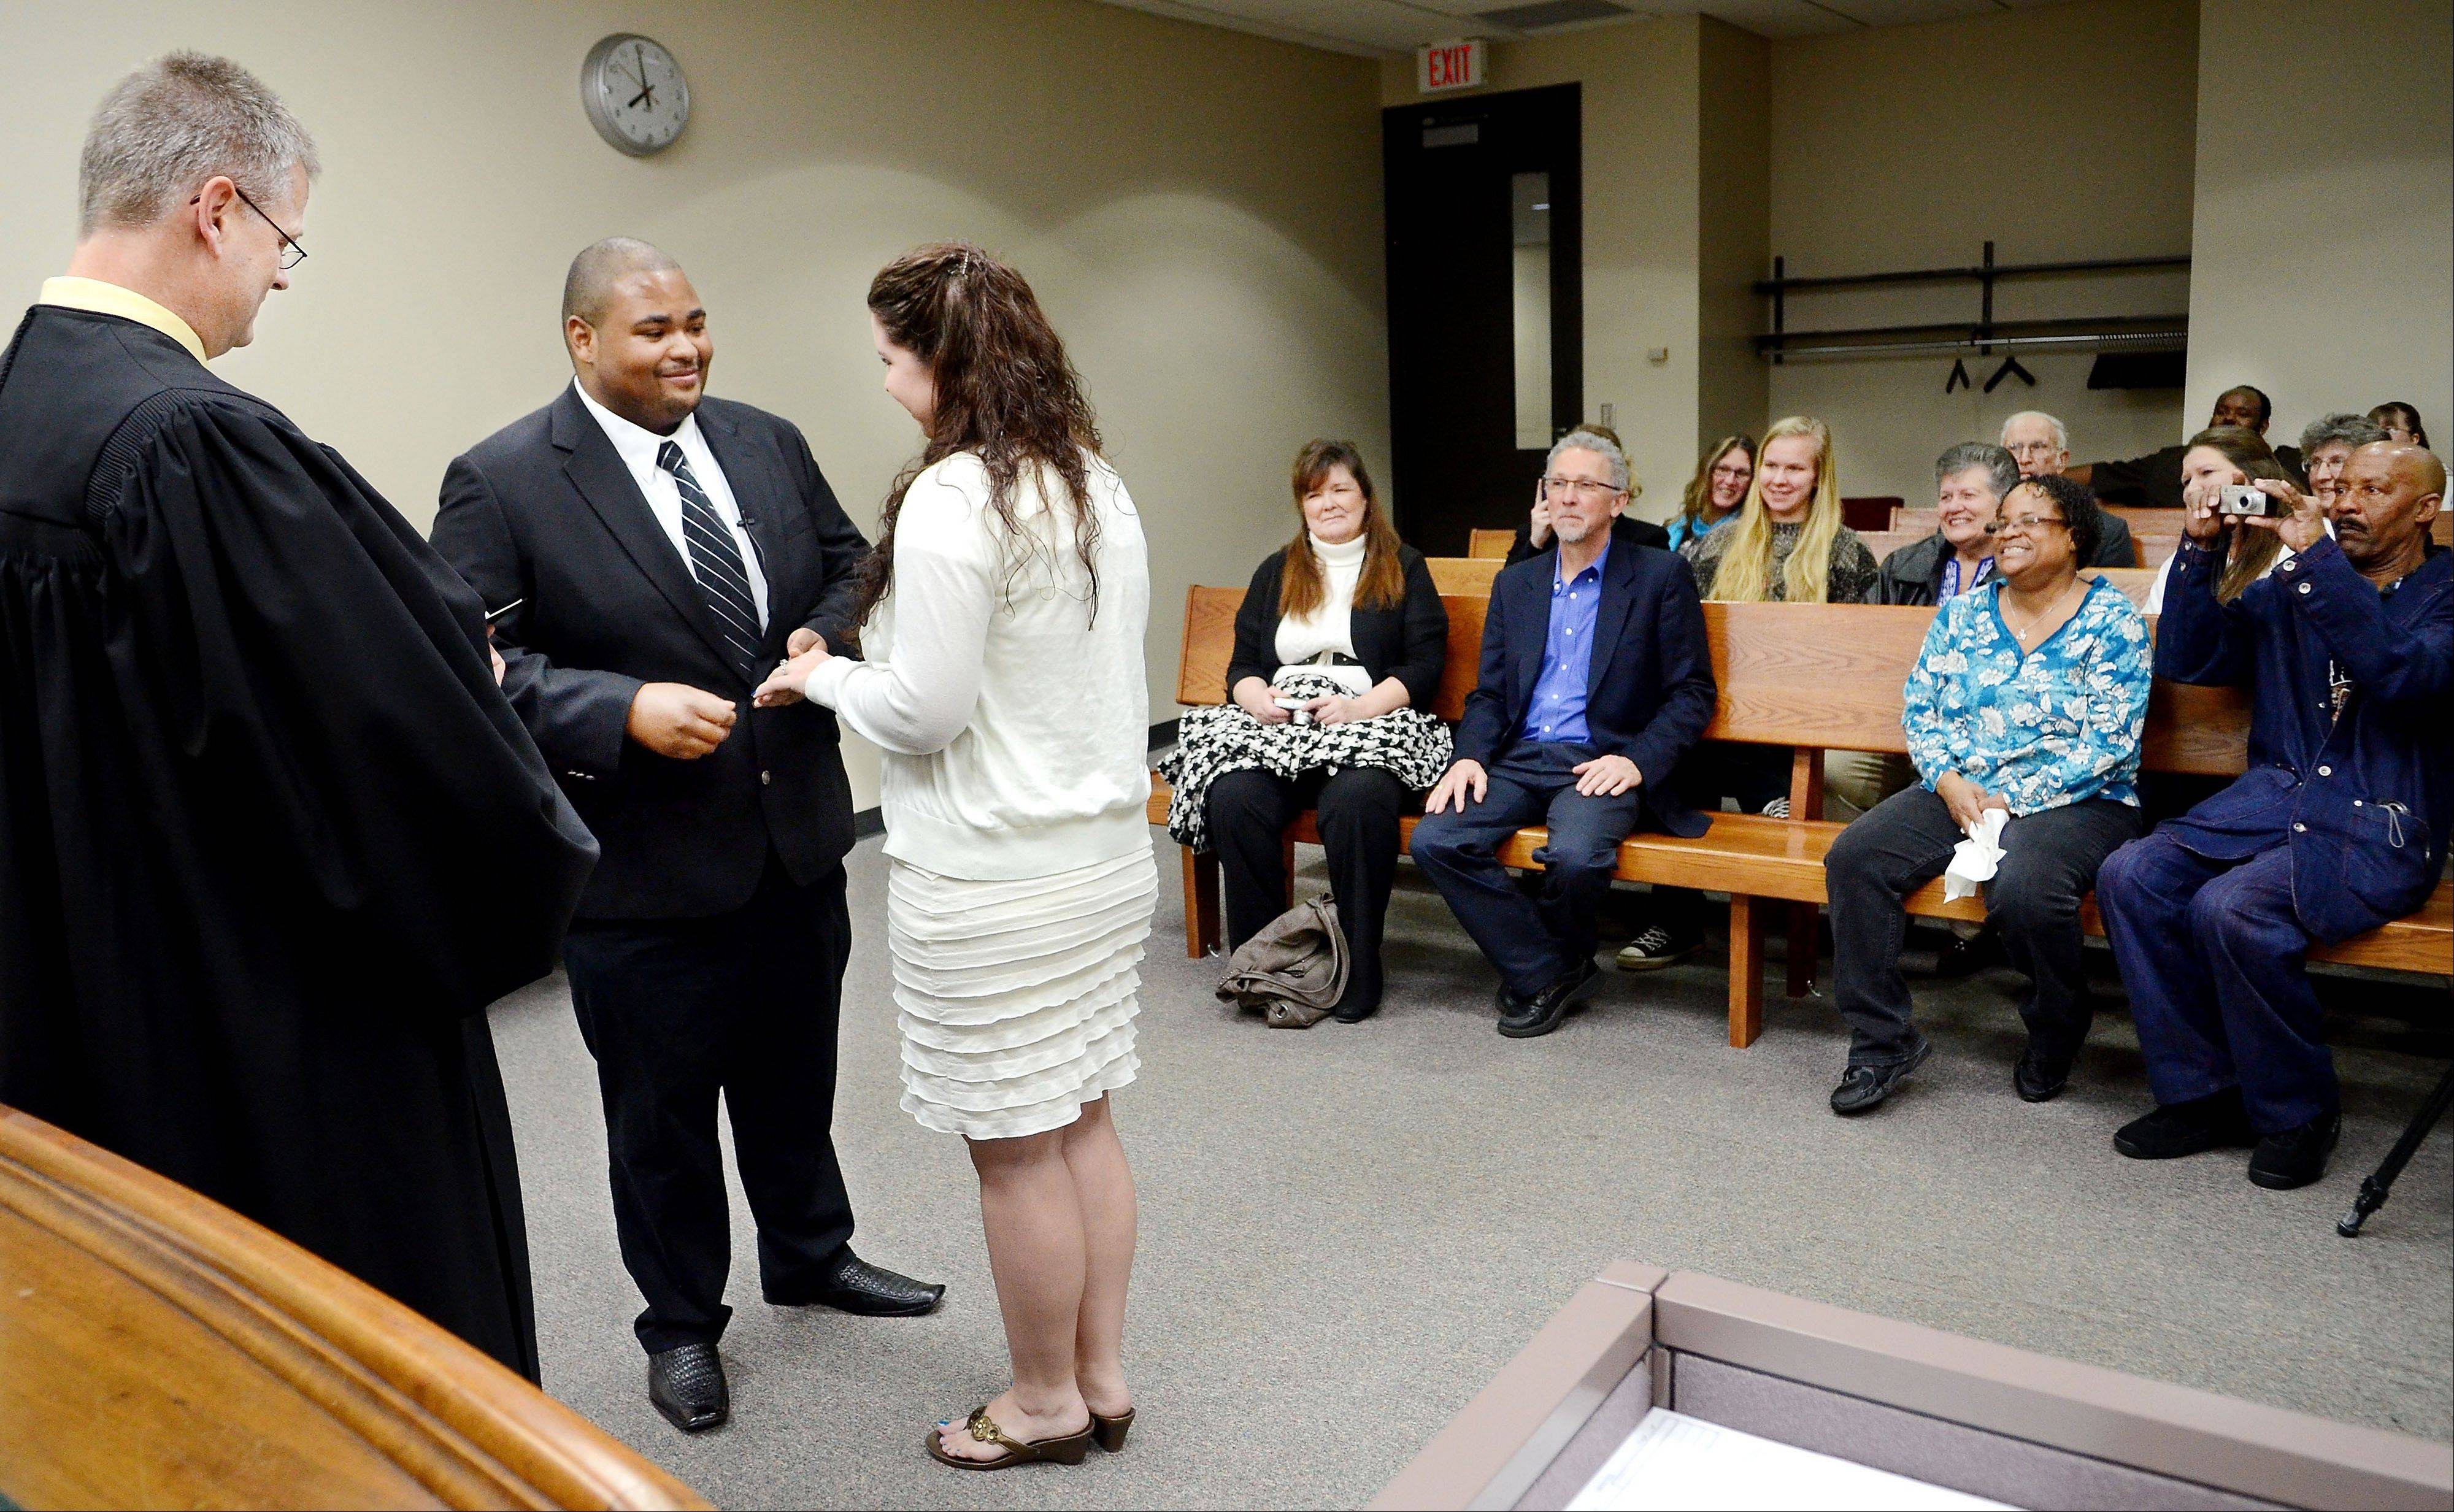 Kelsey Greene and Bruce Brown of Eau Claire, Wis., were married Wednesday in front of friends and family at the Eau Claire County Courthouse by Court Commissioner Nathan Novak.